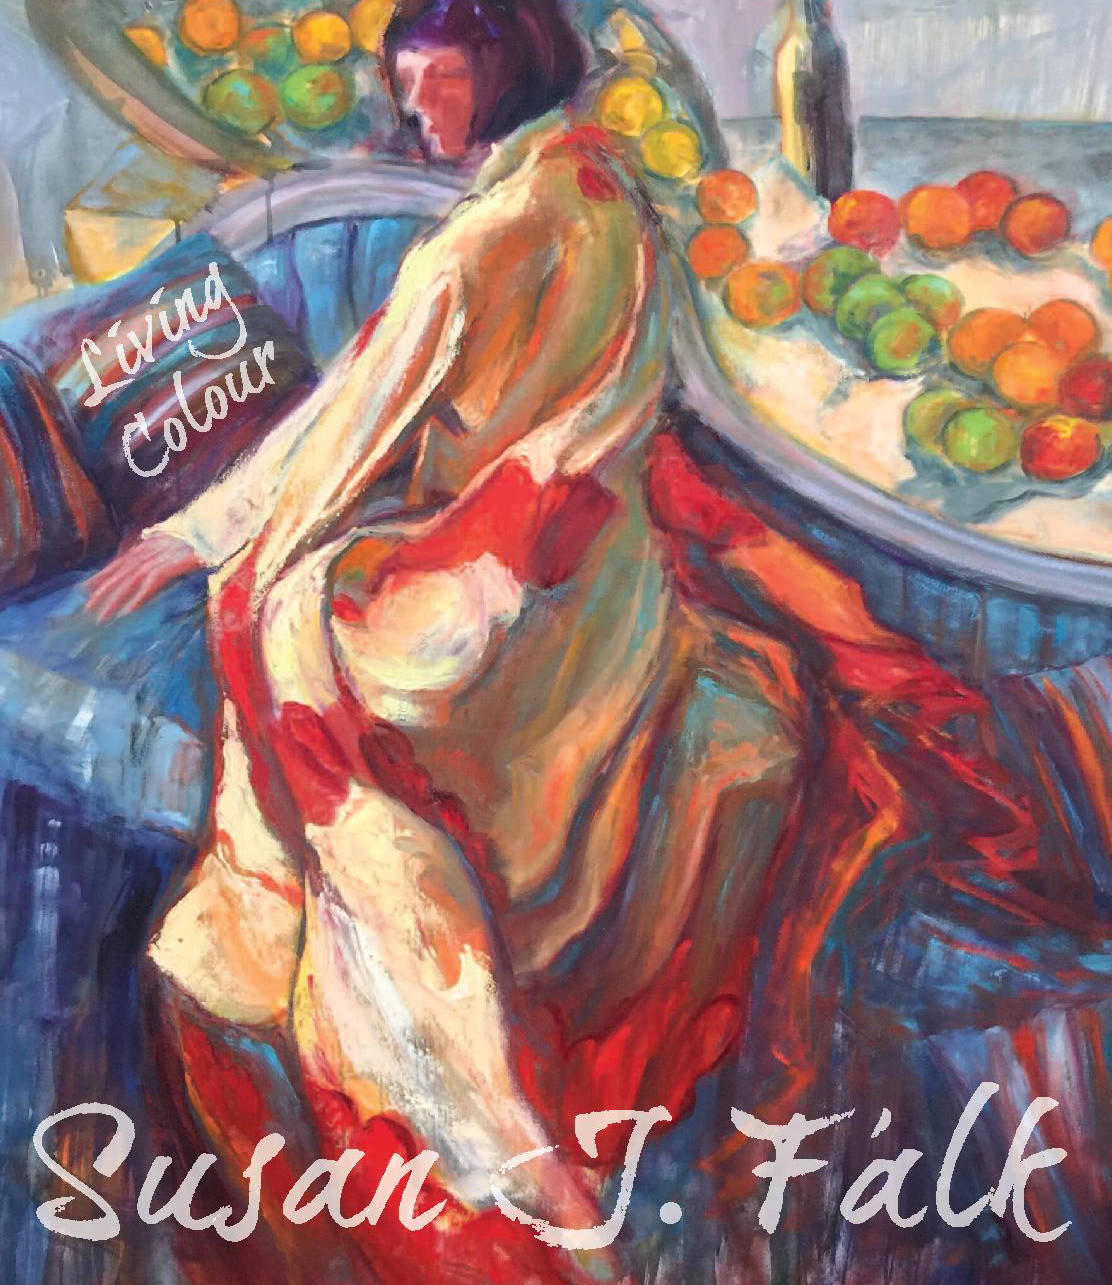 Living Colour, an exhibition by Langley artist Susan J Falk takes place at the Fort Gallery May 17 to June 4. Submitted image